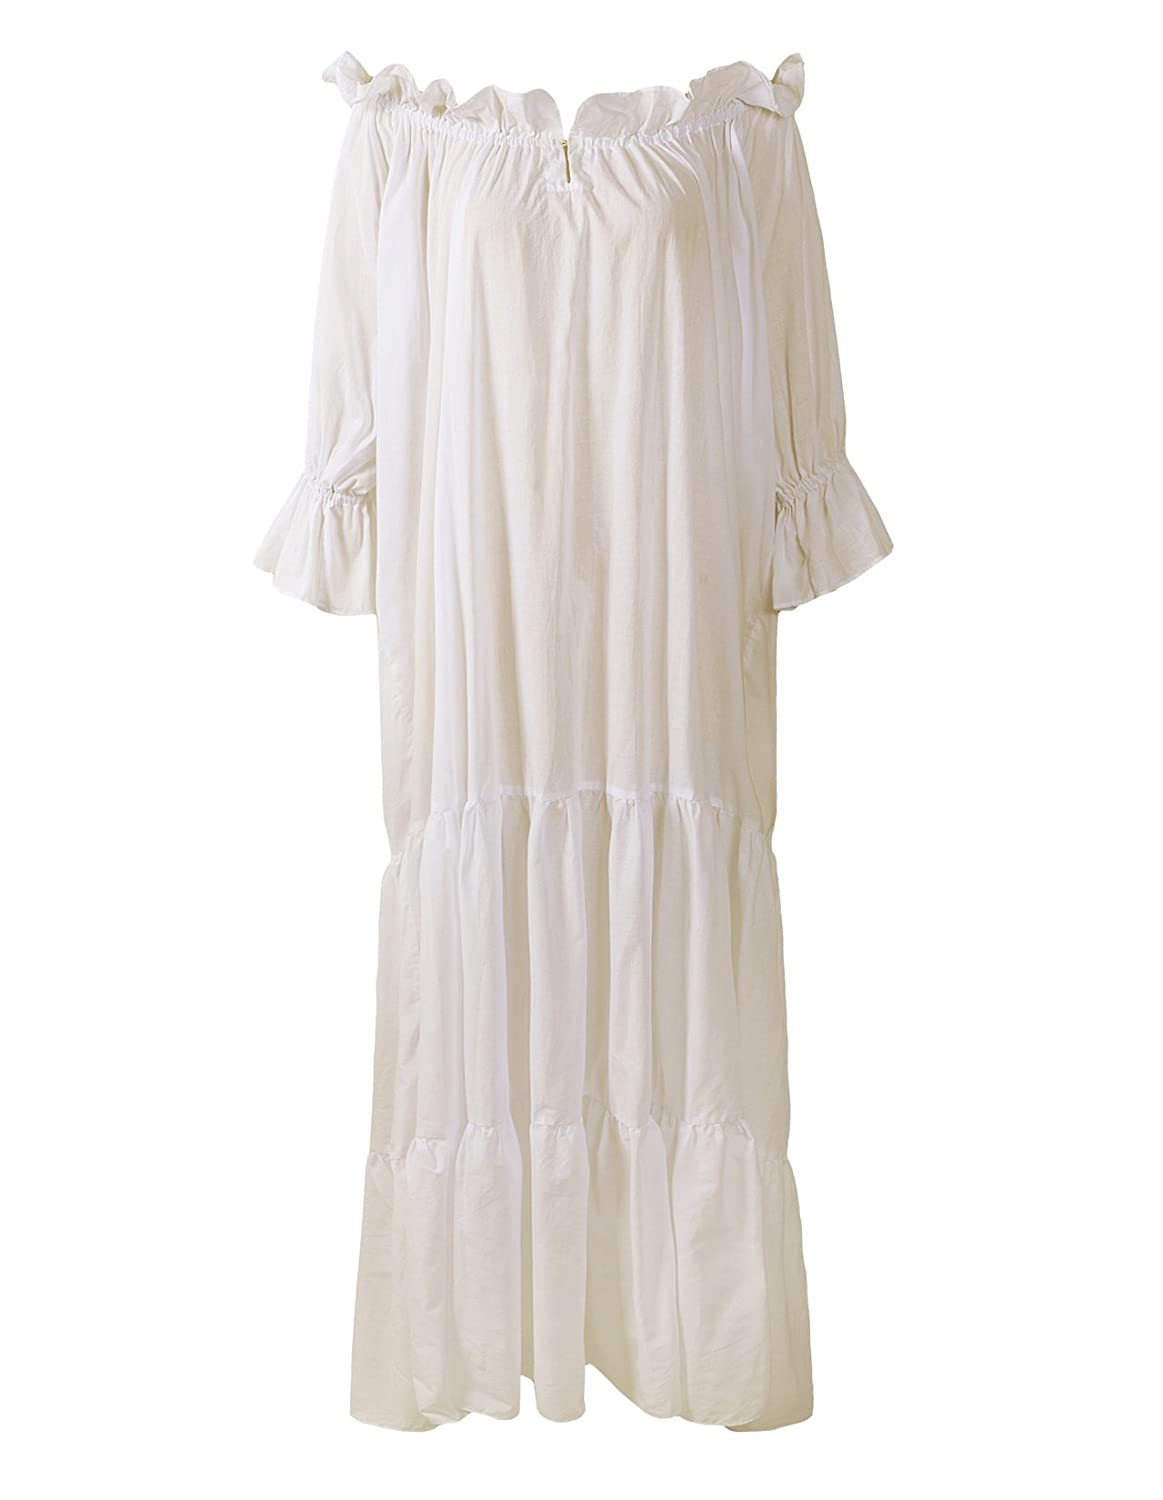 Renaissance Medieval Ruffled Tiered Sleeve Classic Cream Chemise - DeluxeAdultCostumes.com